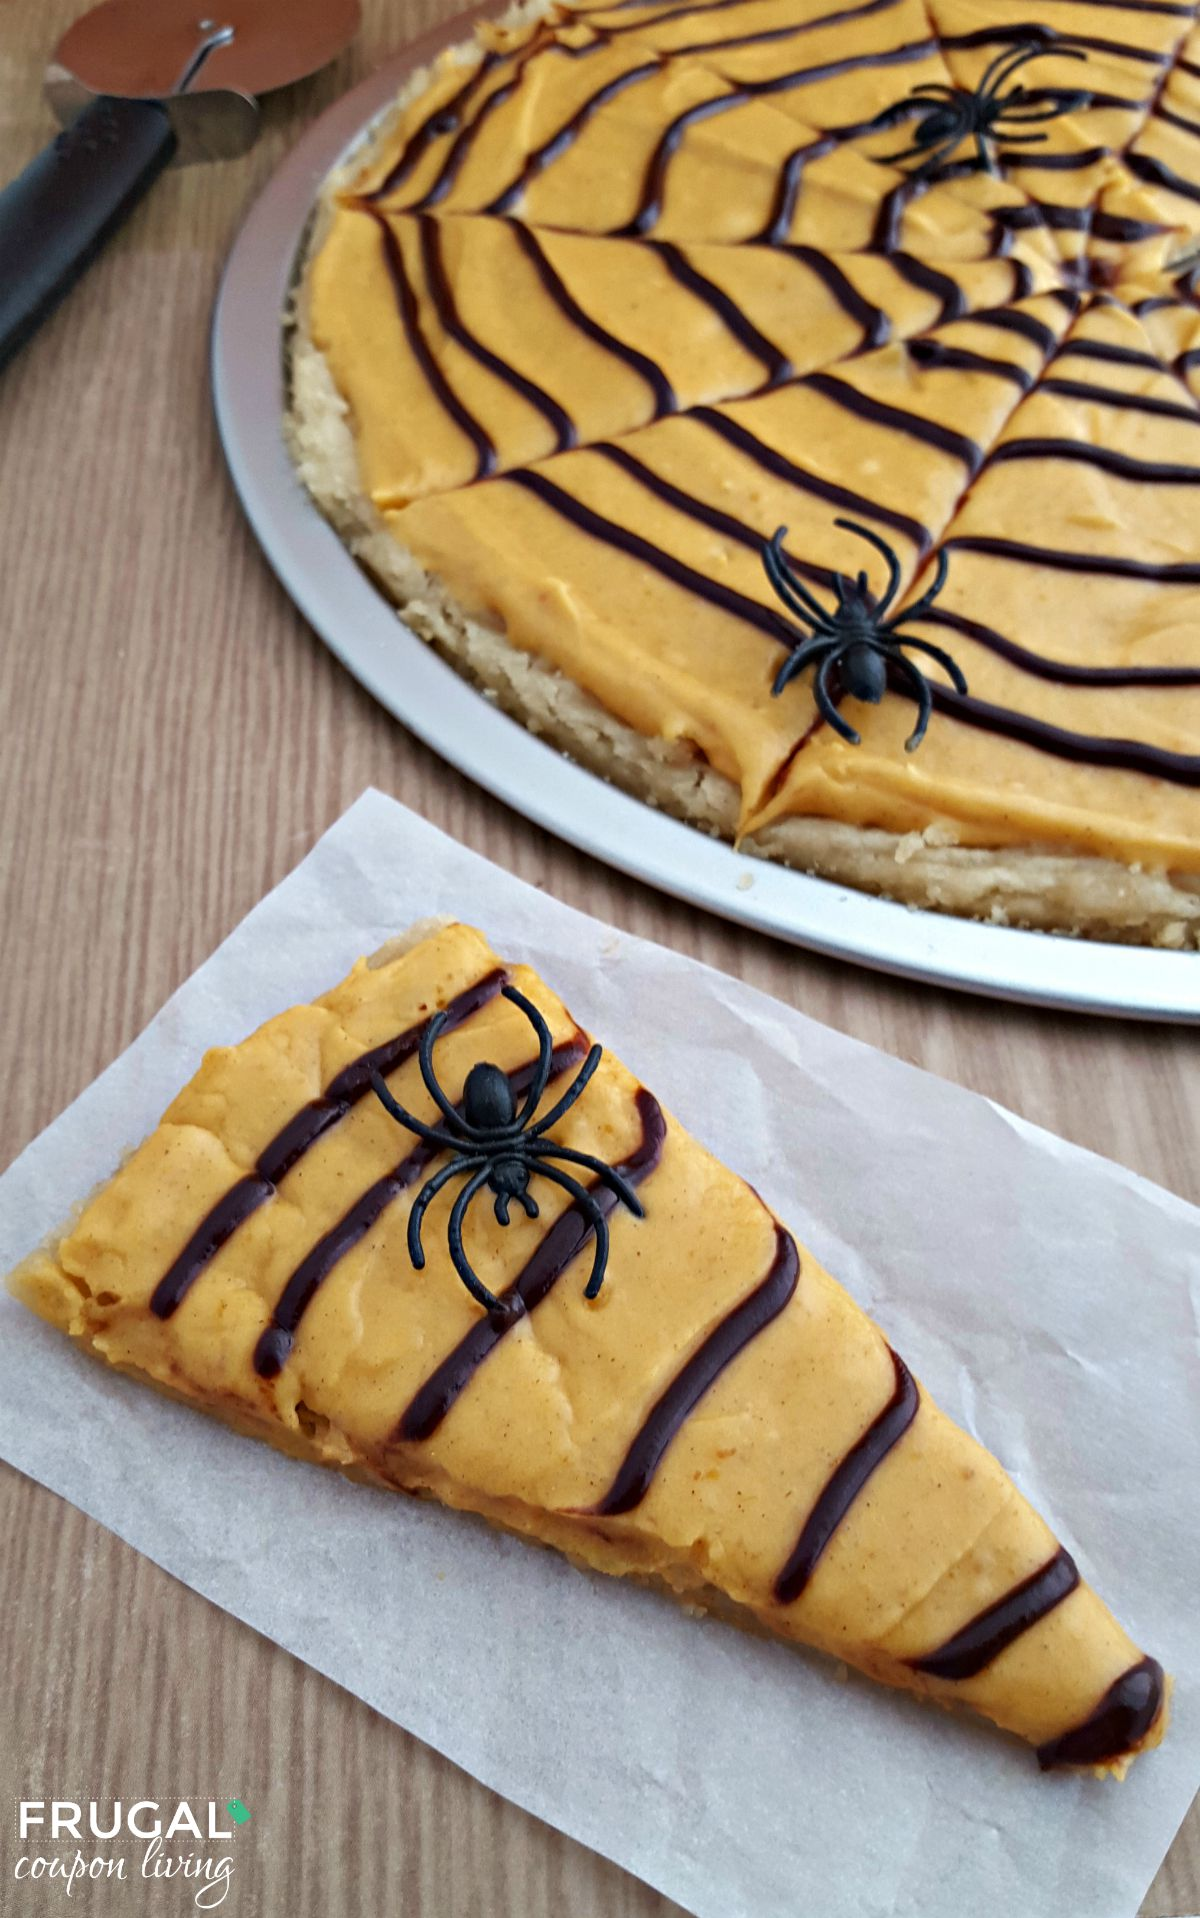 Spider-Web-Cookie-Pizza-on-Frugal-Coupon-LIving